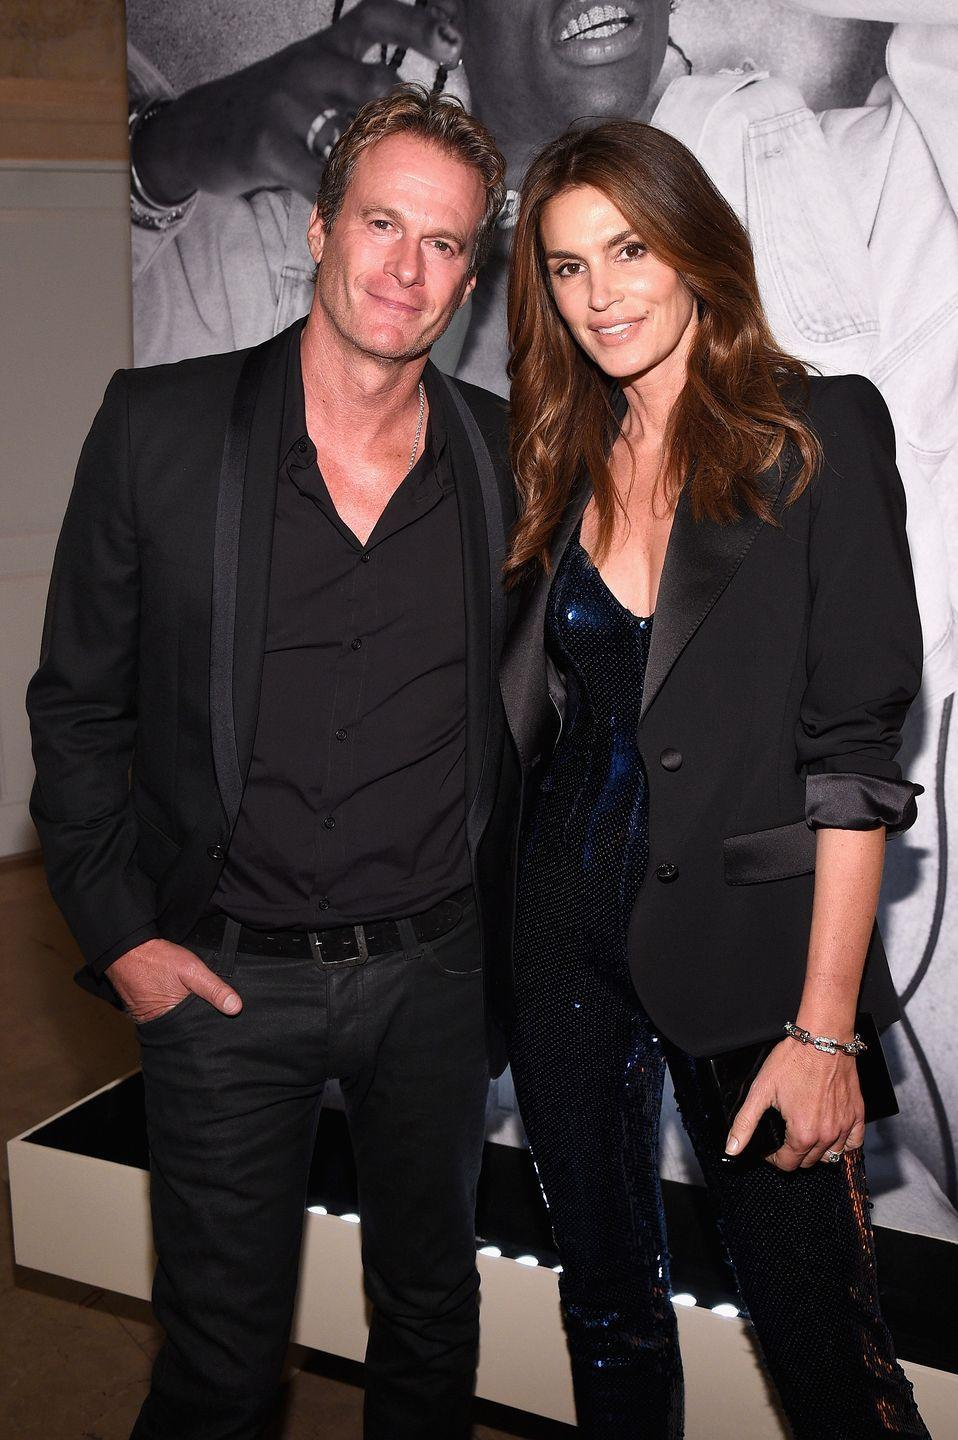 "<p>The supermodel has her agent, Michael Gruber, to thank for connecting her with her husband, Rande Gerber. When Gruber was getting married, he suggested that Crawford and Gerber be each other's dates to his big day. </p><p>""We decided to meet the night before and get to know each other,"" <a href=""http://people.com/archive/cover-story-hello-love-vol-58-no-3/"" rel=""nofollow noopener"" target=""_blank"" data-ylk=""slk:Gerber told People"" class=""link rapid-noclick-resp"">Gerber told <em>People</em></a>. ""I was surprised at how cool and down-to-earth she was.""</p>"